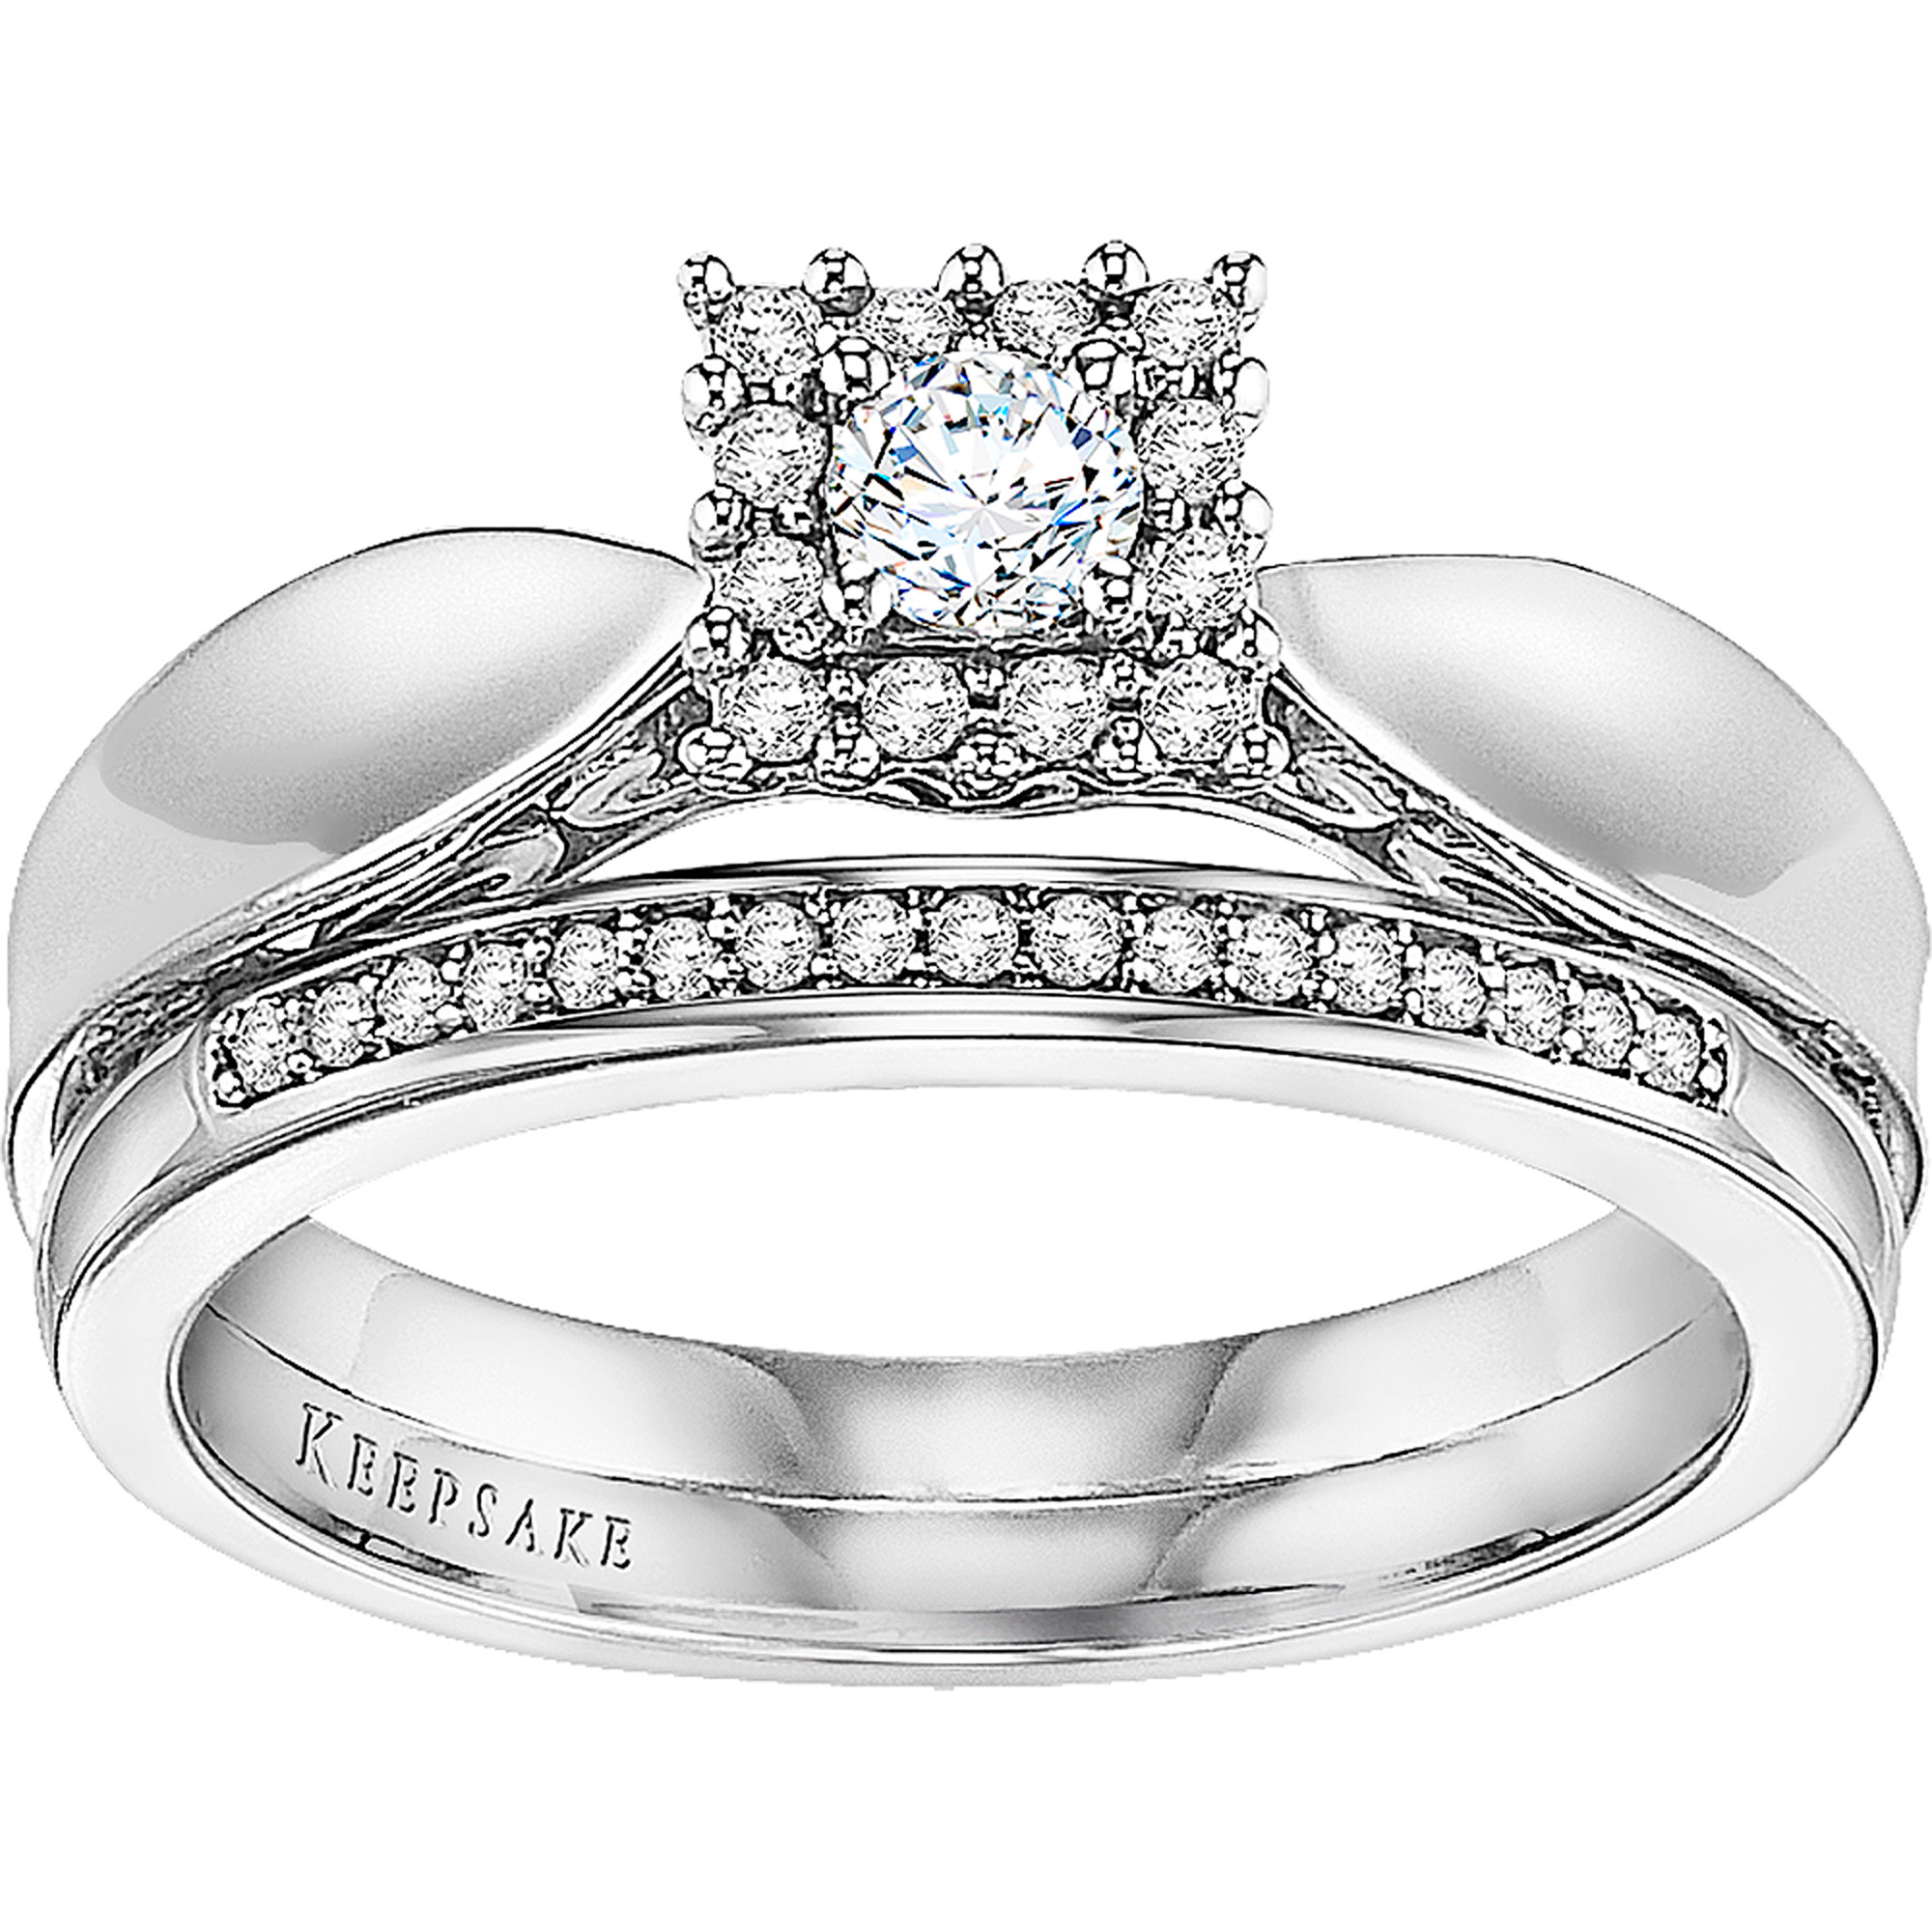 Forever Bride 1/4 CT. T.W. Diamond Princess Bridal Set in Sterling Silver